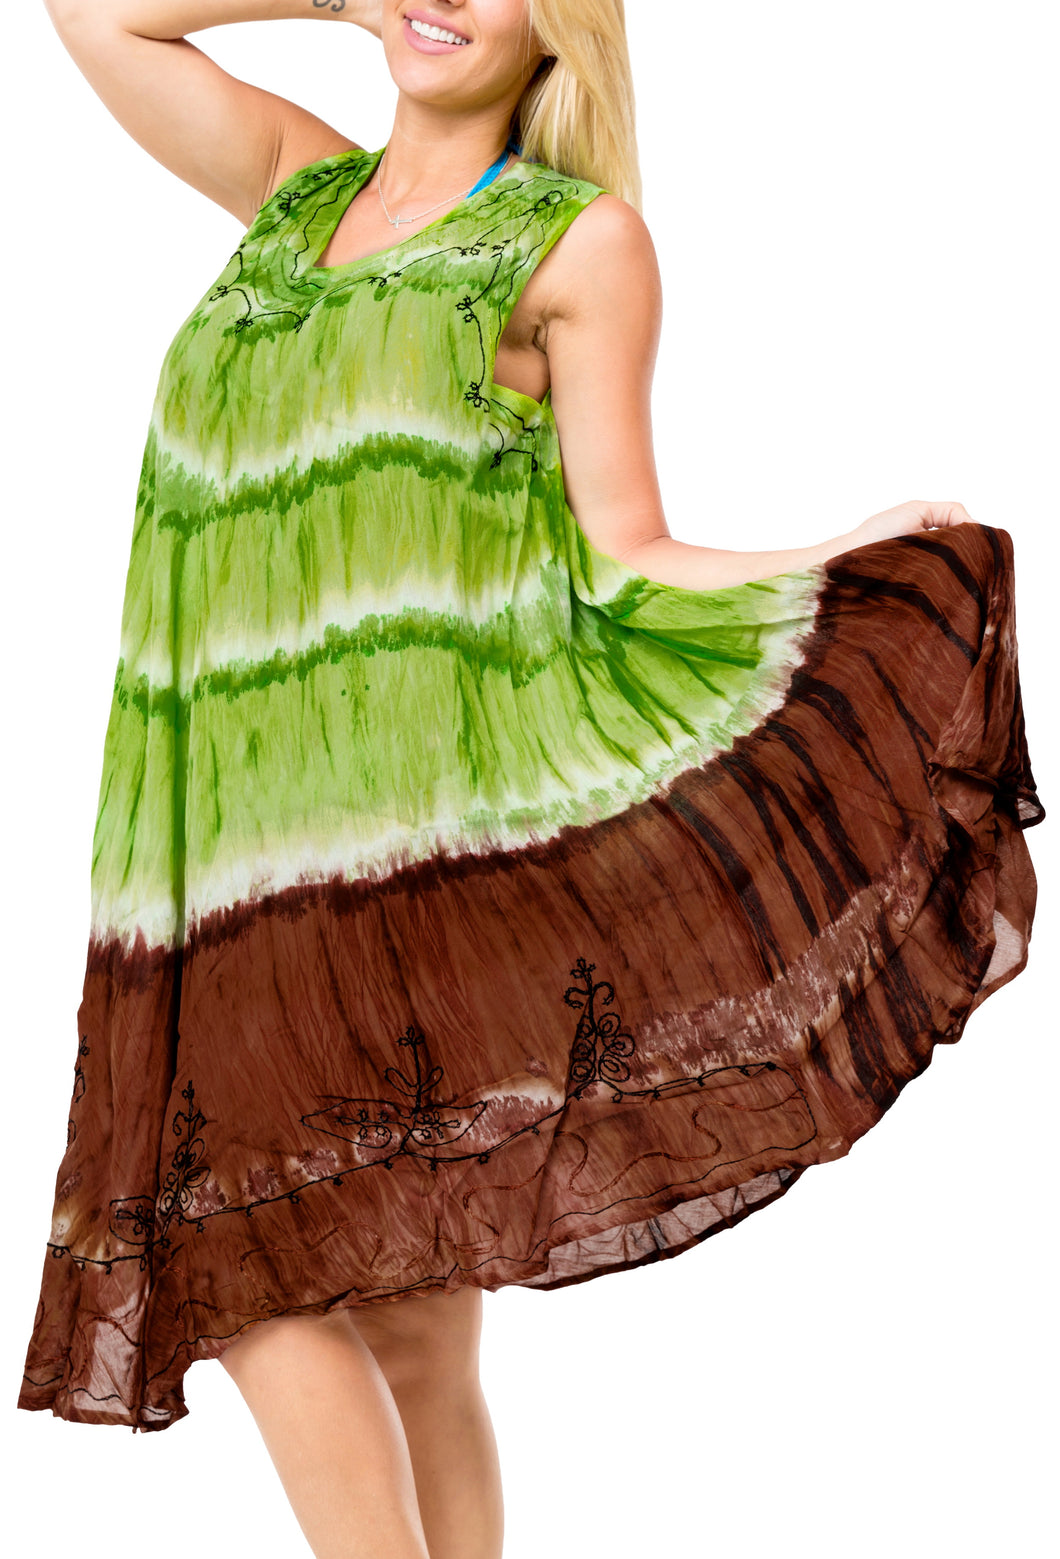 la-leela-rayon-tie-dye-party-swimsuit-tube-casual-dress-beach-cover-upes-osfm-14-20-l-2x-parrot-green_3673